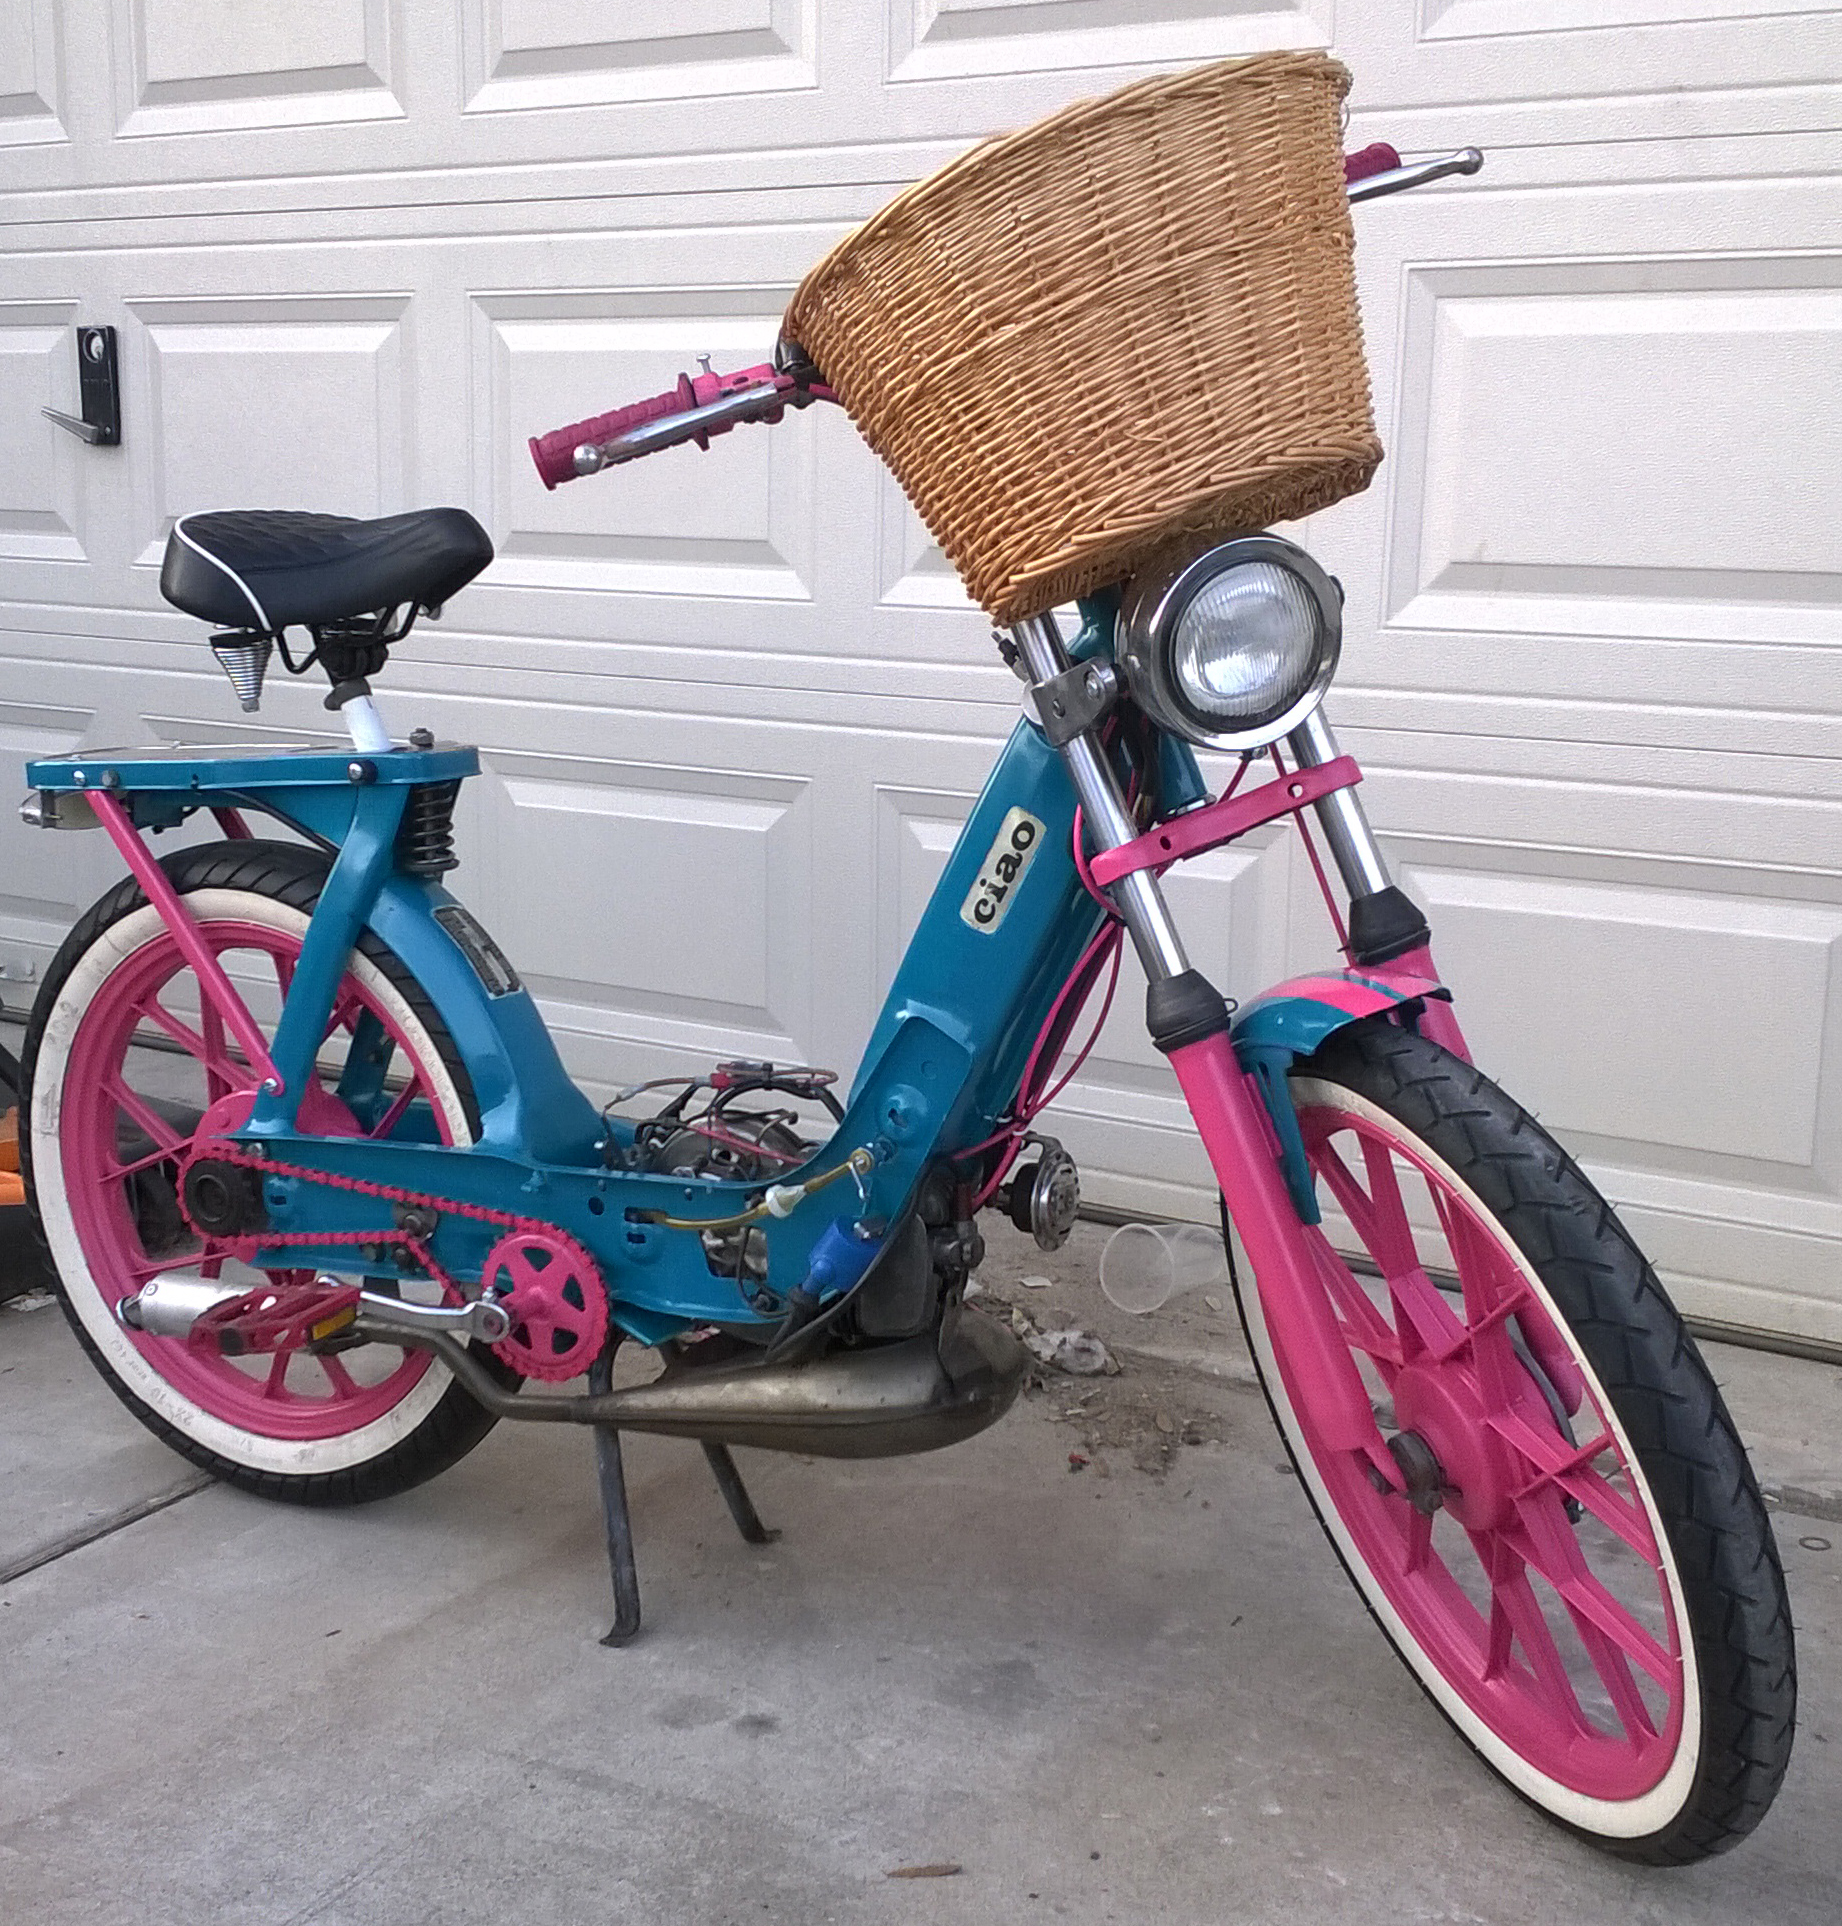 1978 JC Penney Pinto Moped Ride To Work::